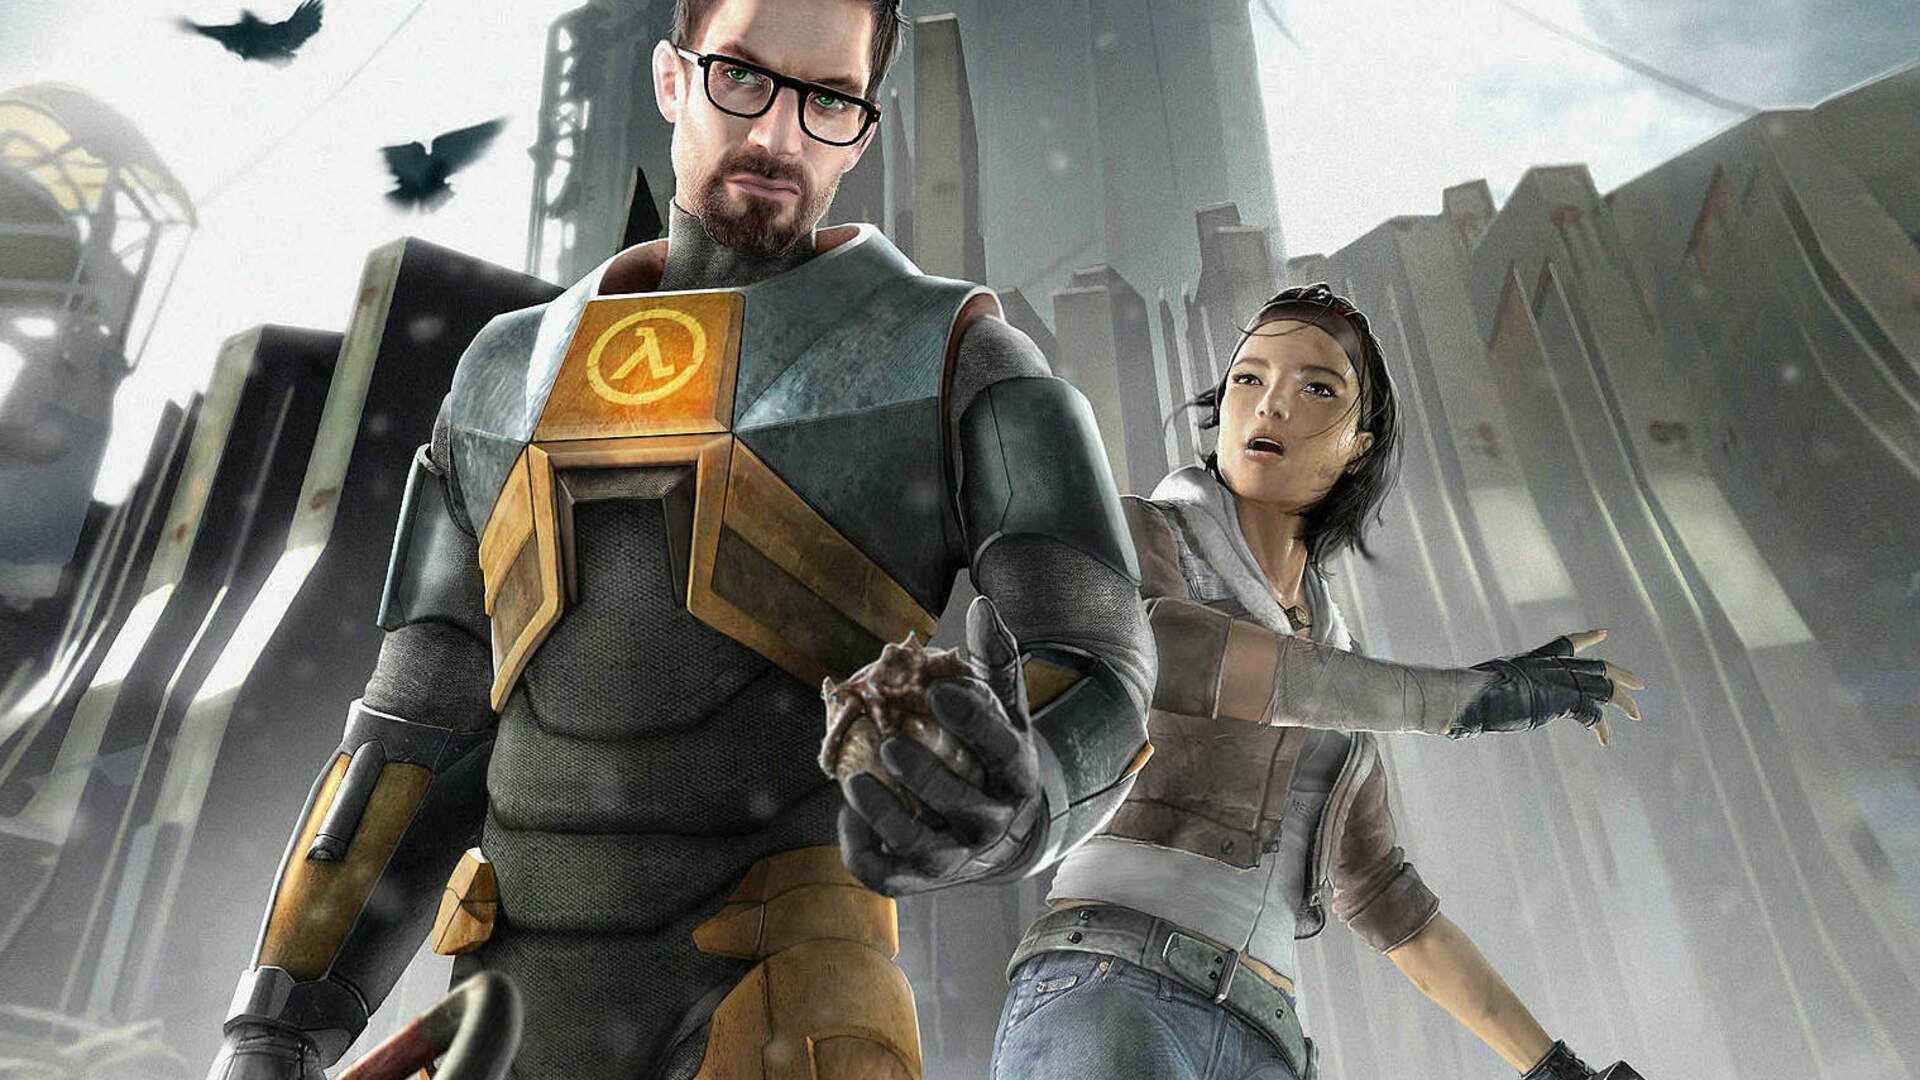 Half-Life 2 Celebrates its 15th Anniversary Today. Here's Why its Rushed Ending is Now its Biggest Strength